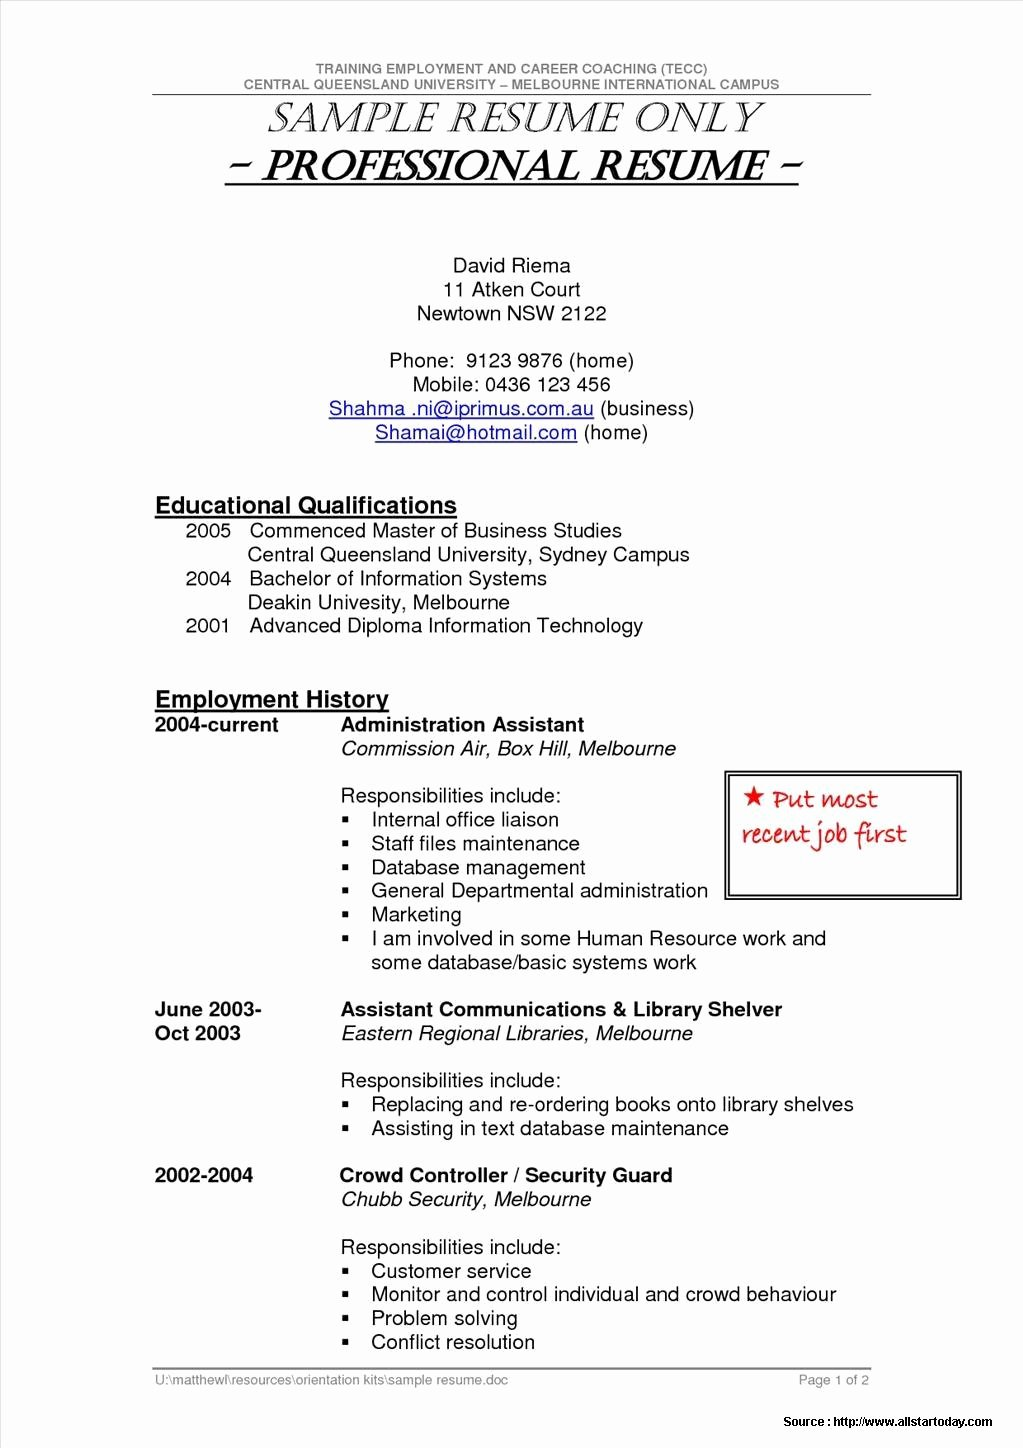 Sample Resume for Security Guard Entry Level Resume